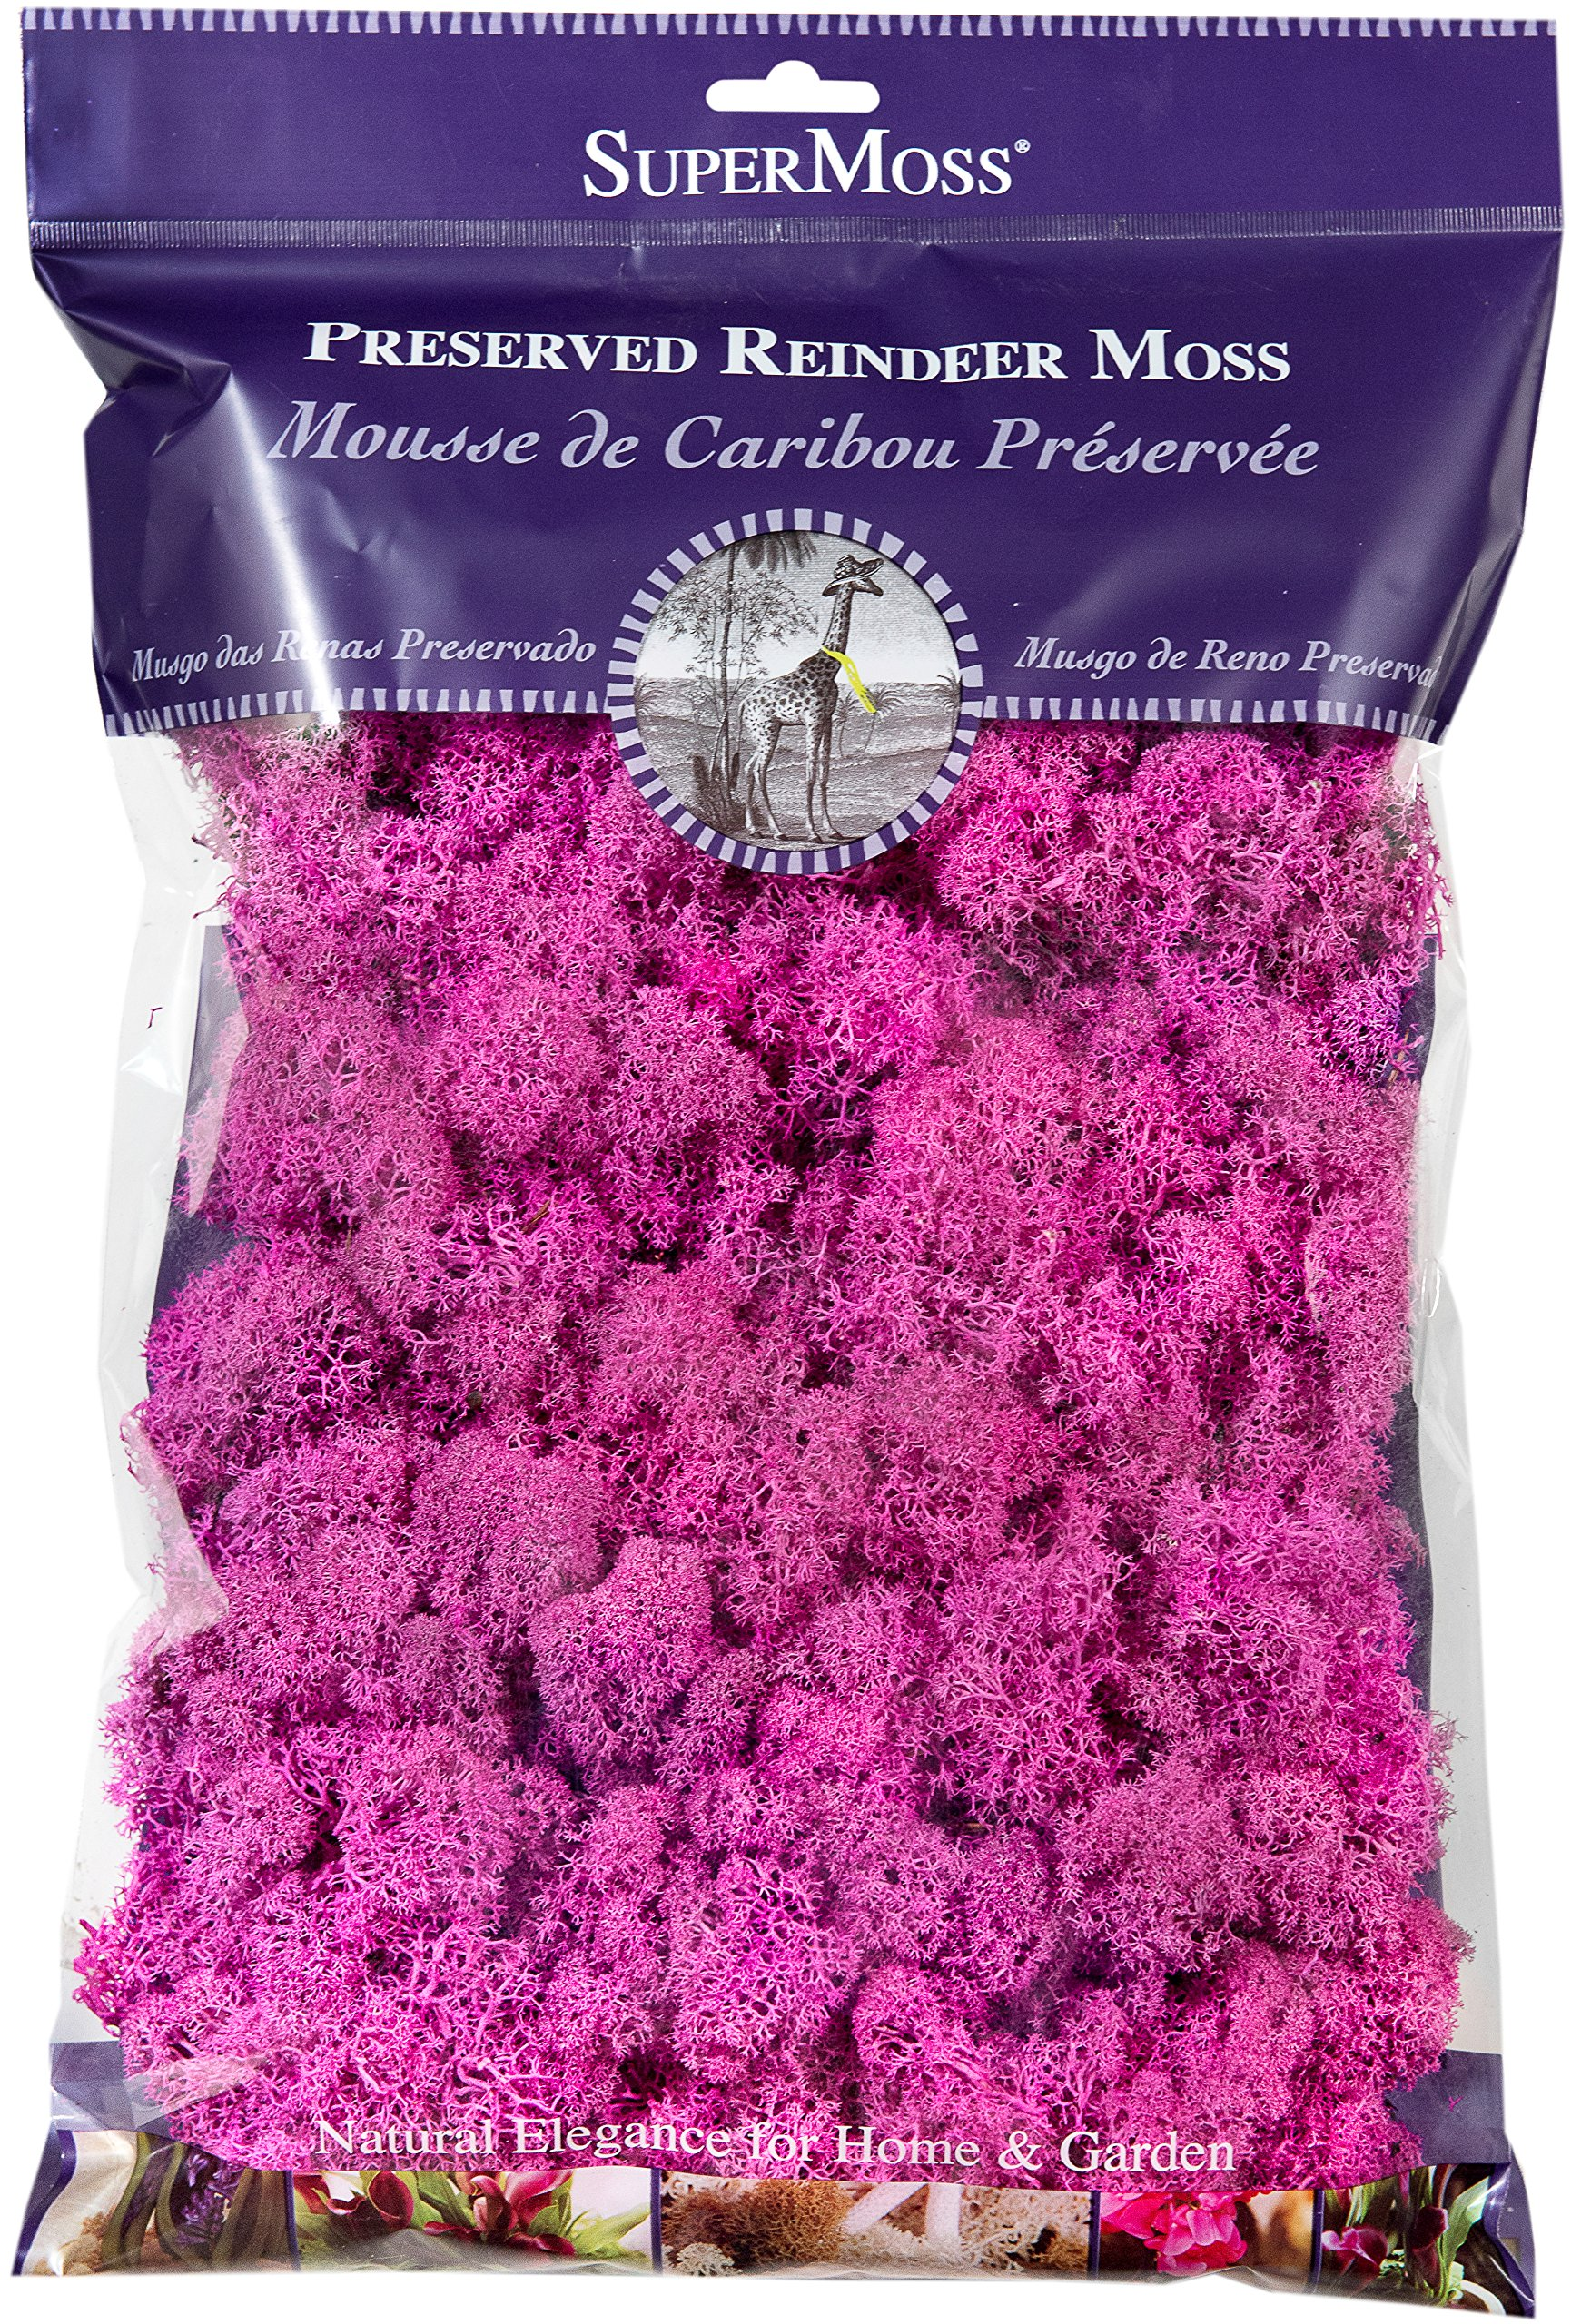 SuperMoss (23199) Reindeer Moss Preserved Bag, 8oz, Pink by Super Moss (Image #1)